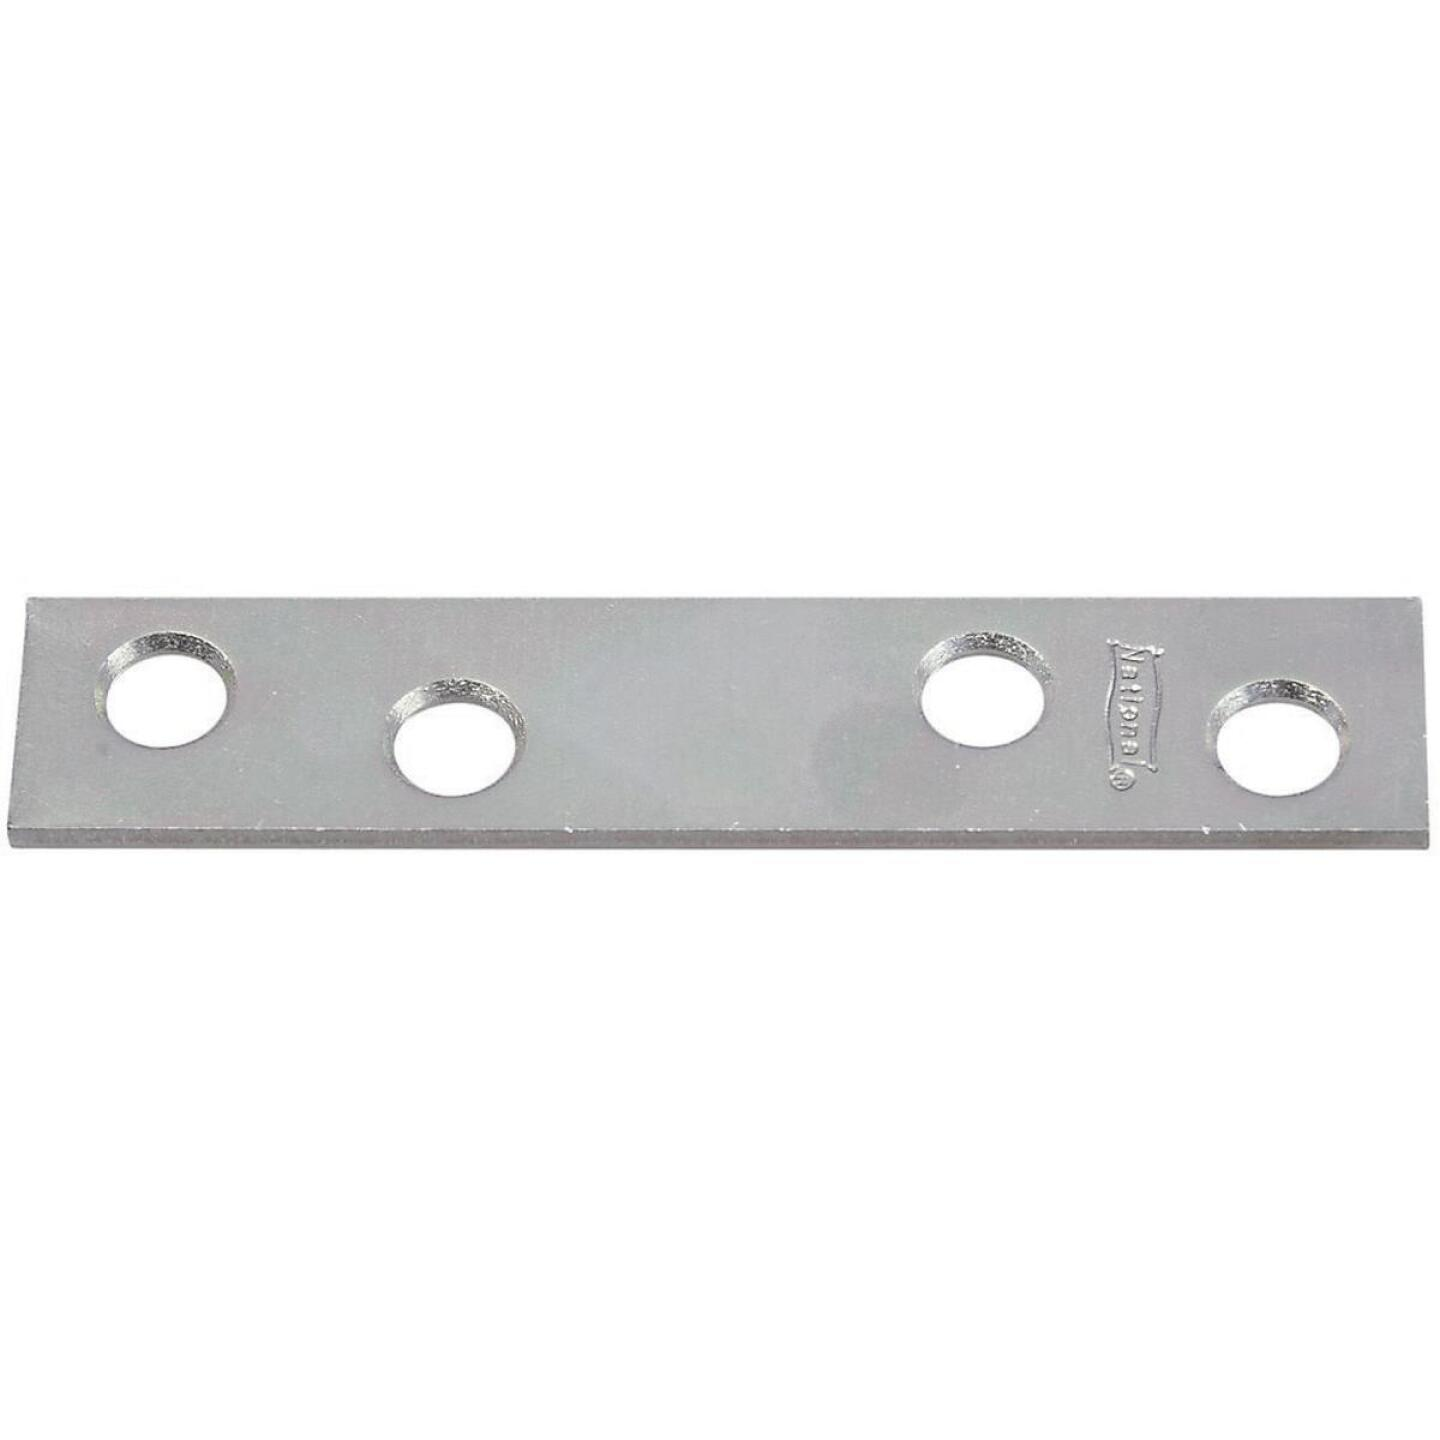 National Catalog 118 3 In. x 5/8 In. Zinc Steel Mending Brace (4-Count) Image 1